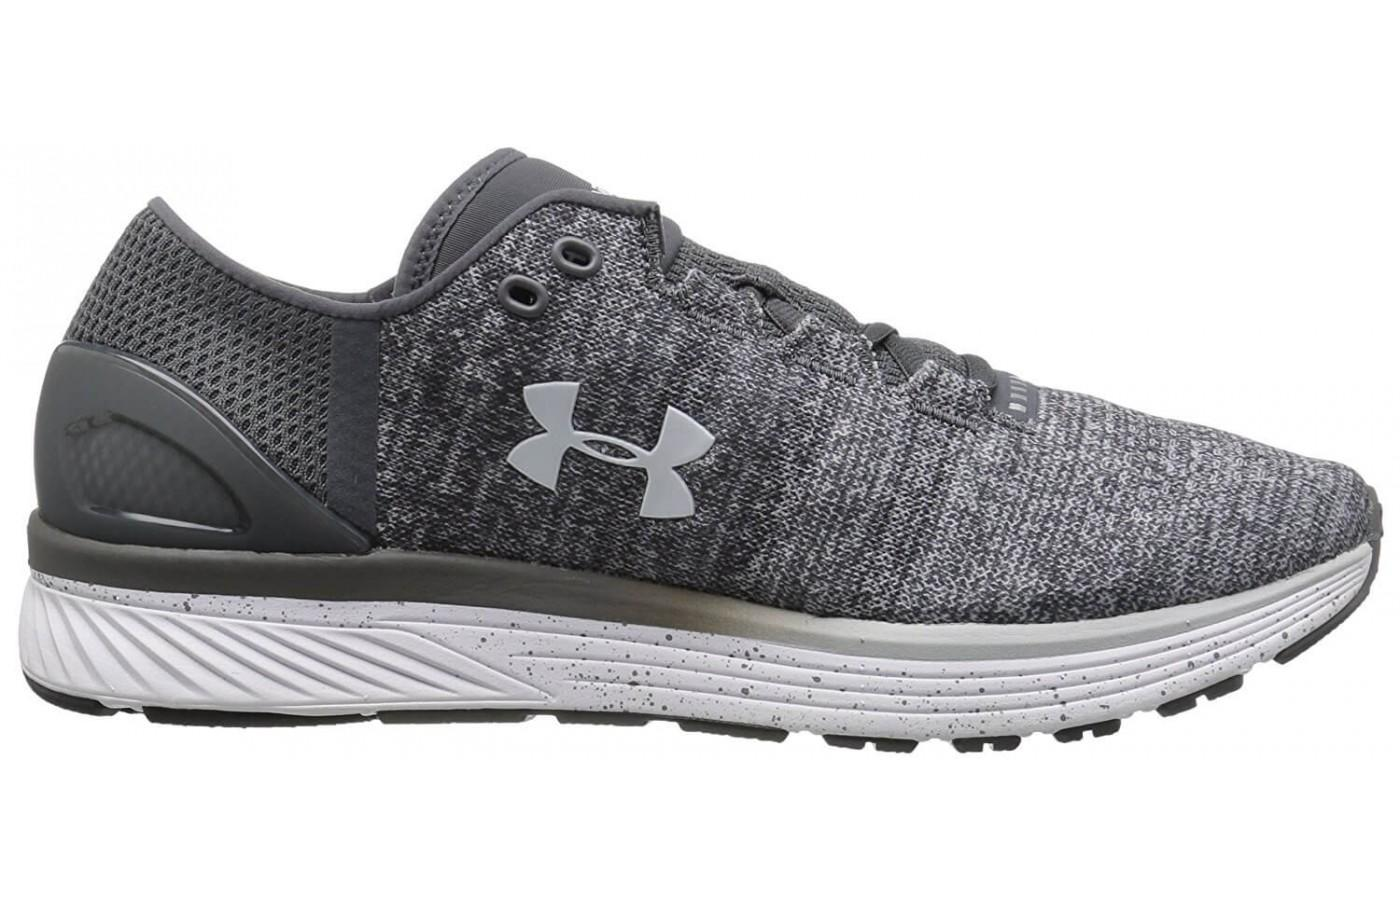 The midsole foam used in this shoe provides added cushioning.